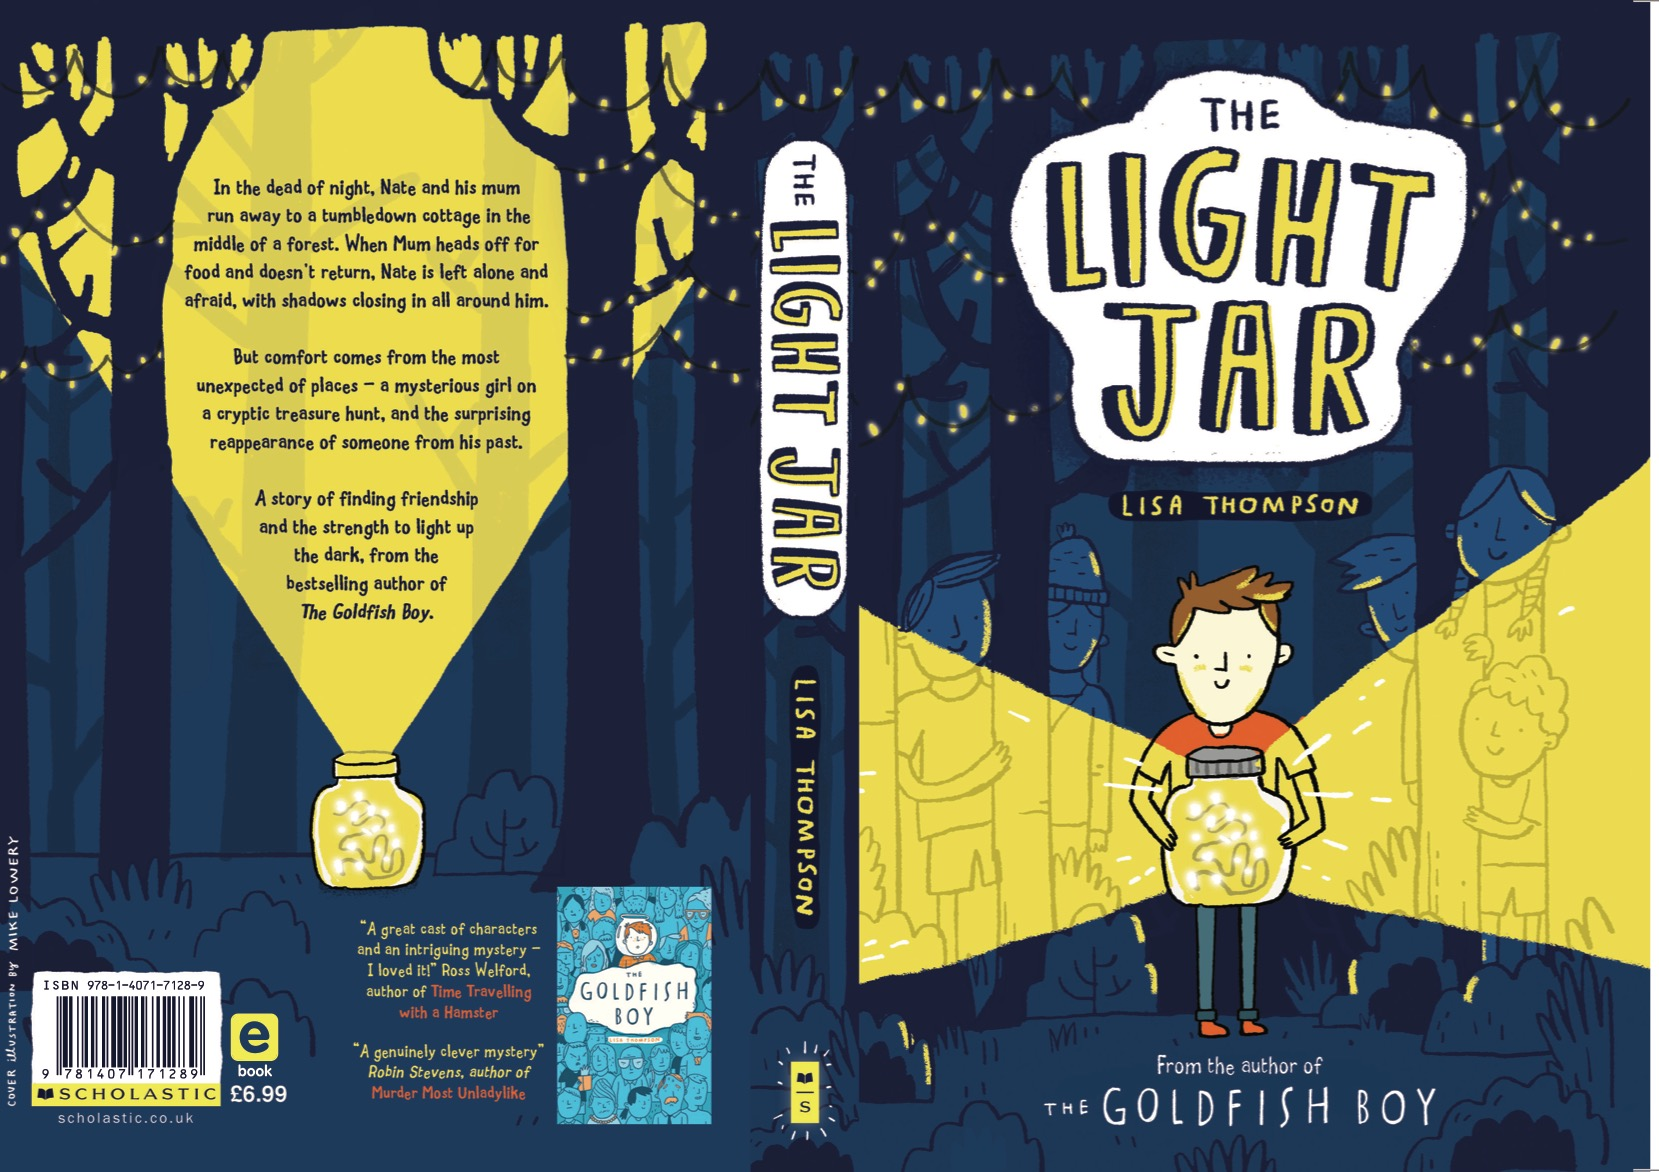 Review: The Light Jar – Lisa Thompson (Illustrated by Mike